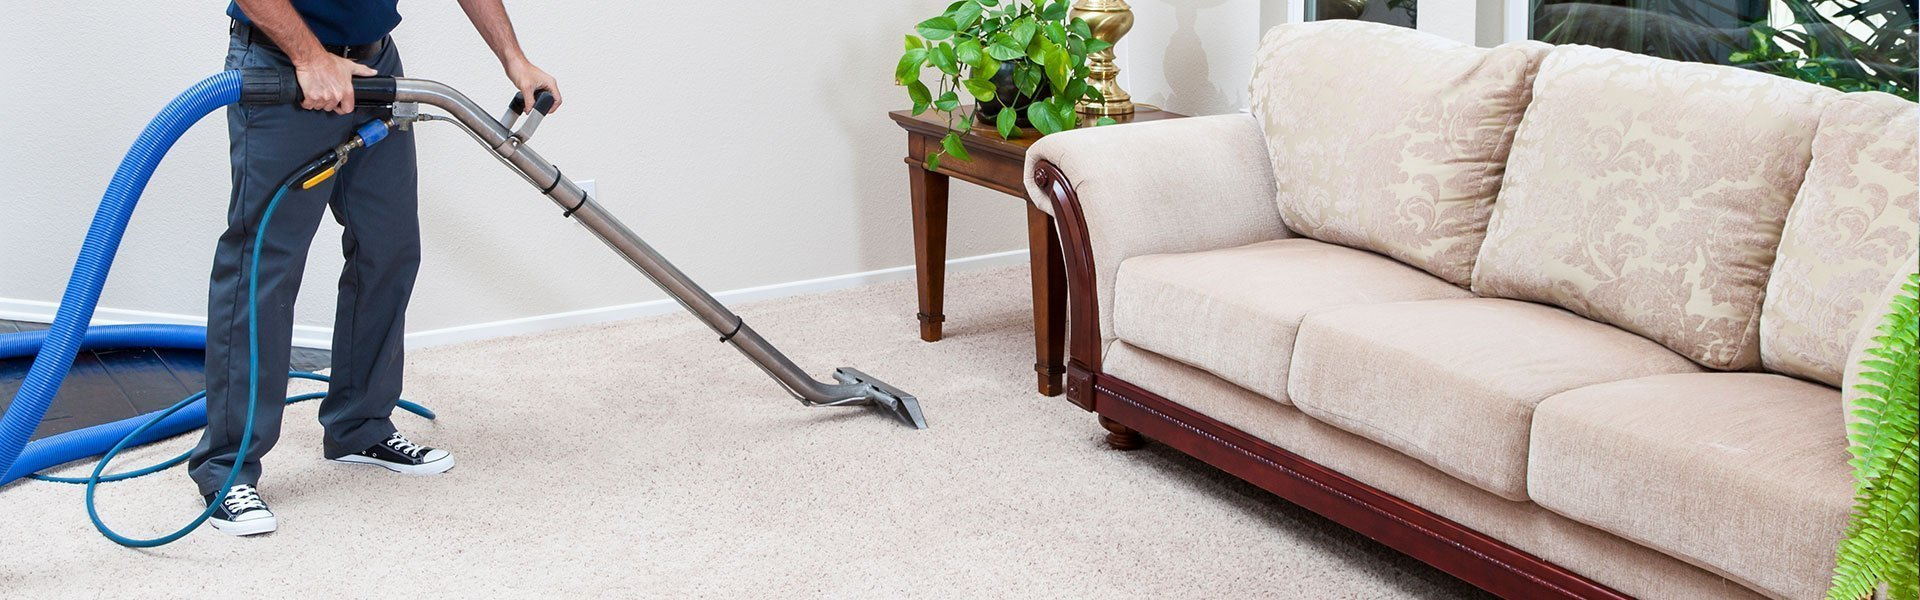 Carpet Cleaning Services In Hamilton NJ